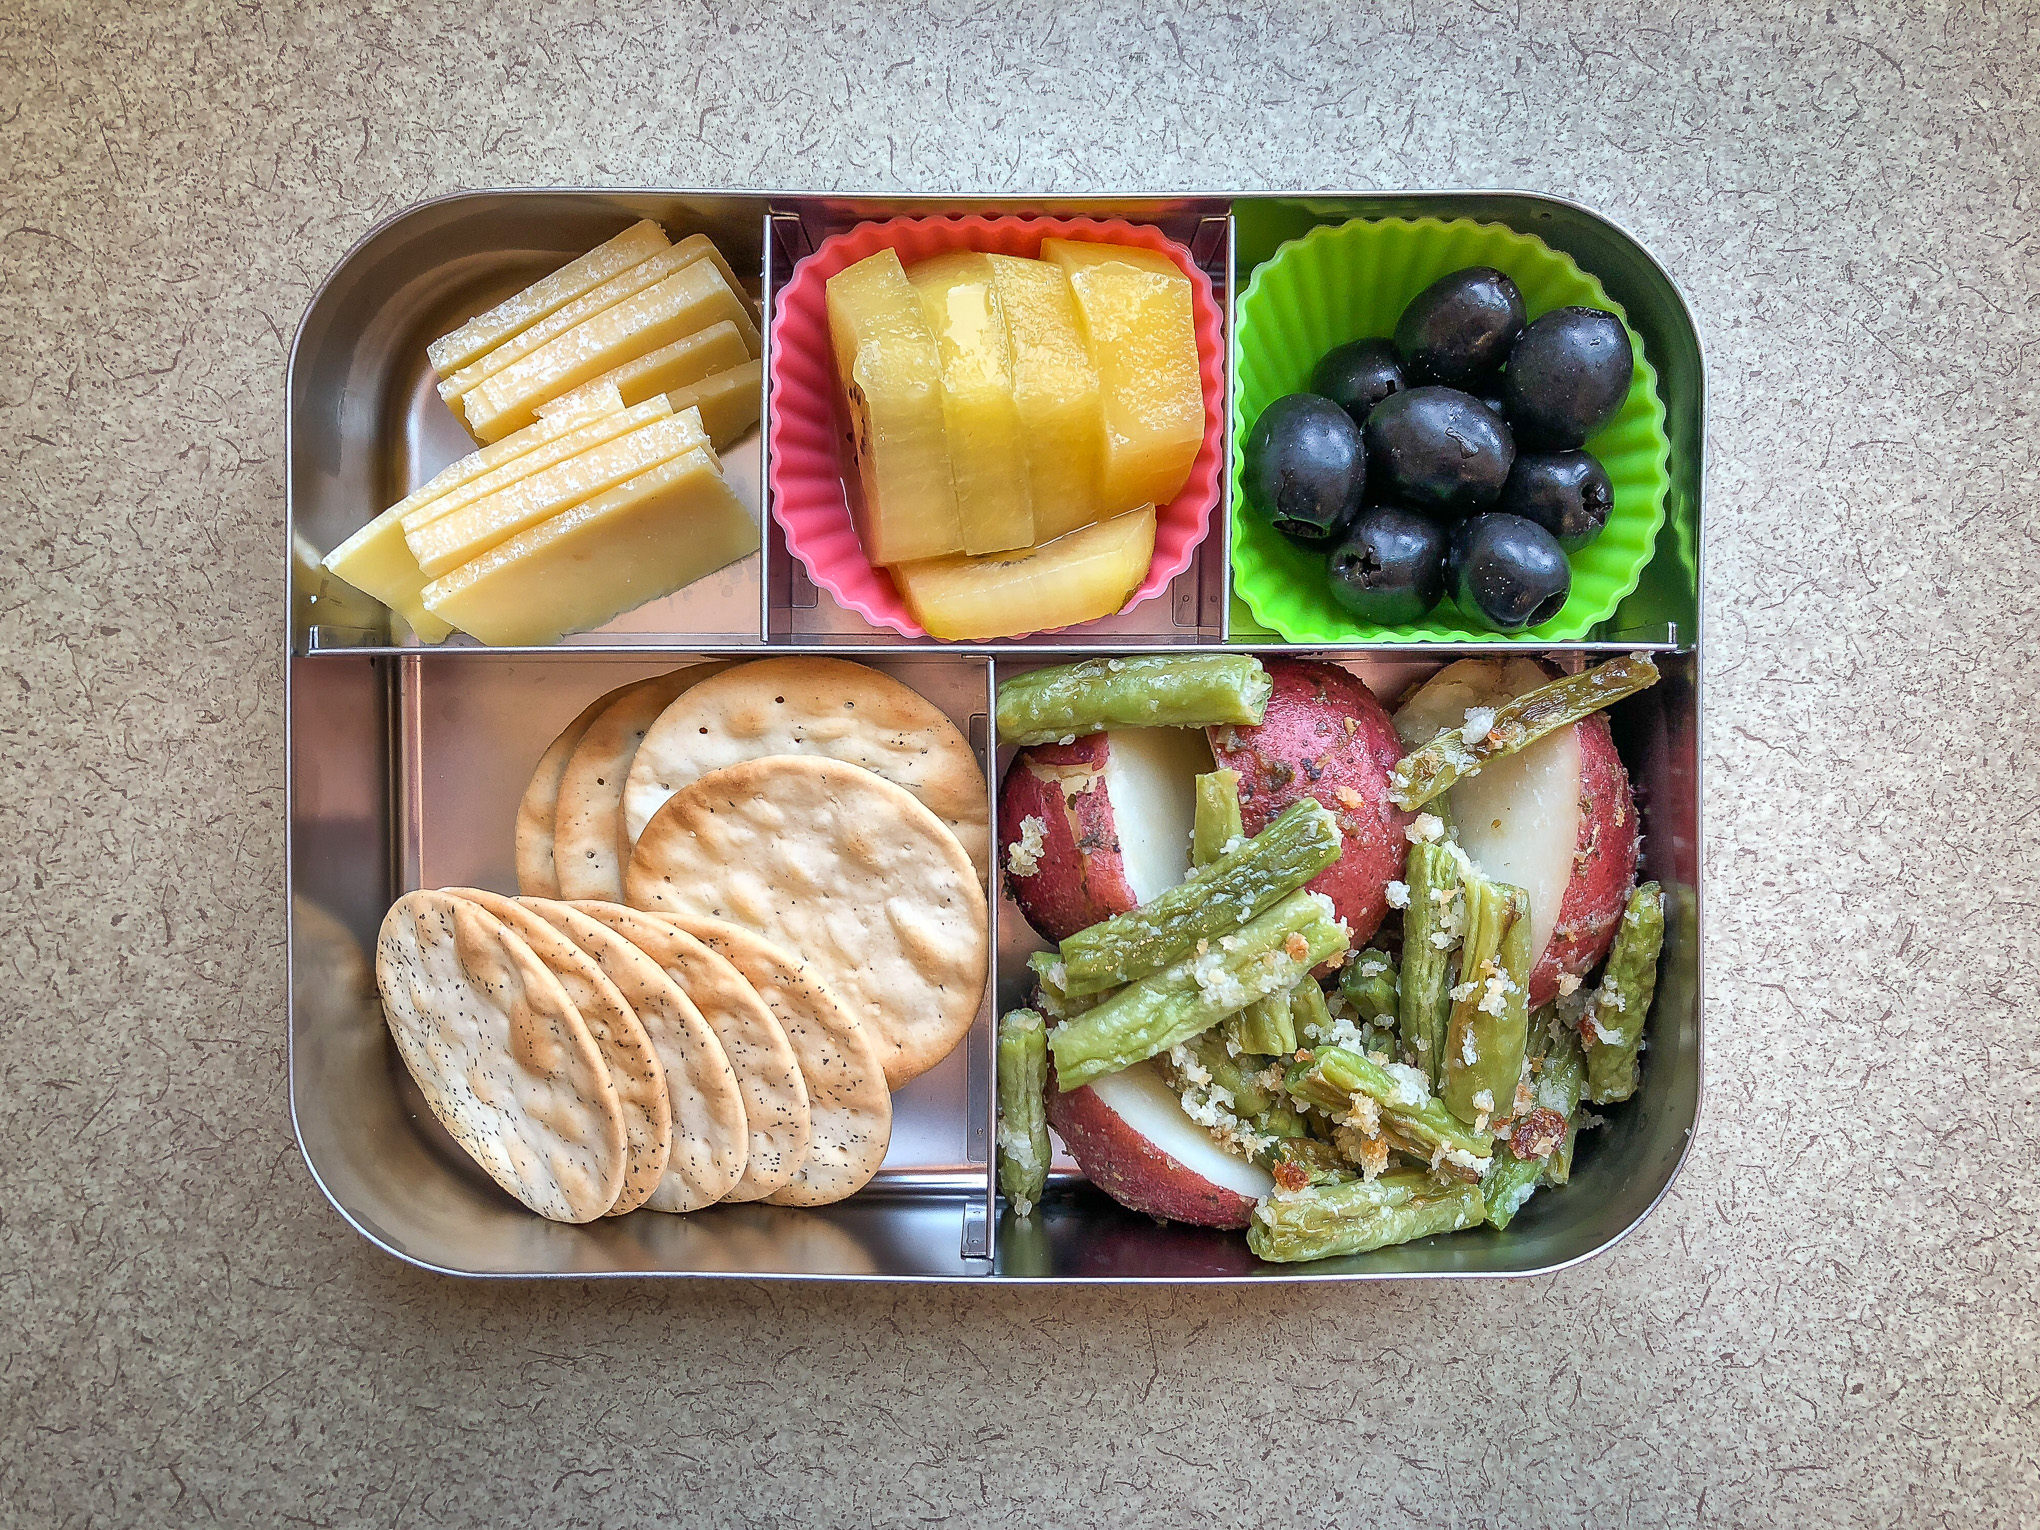 Bento box filled with cheese, fruit and vegetables